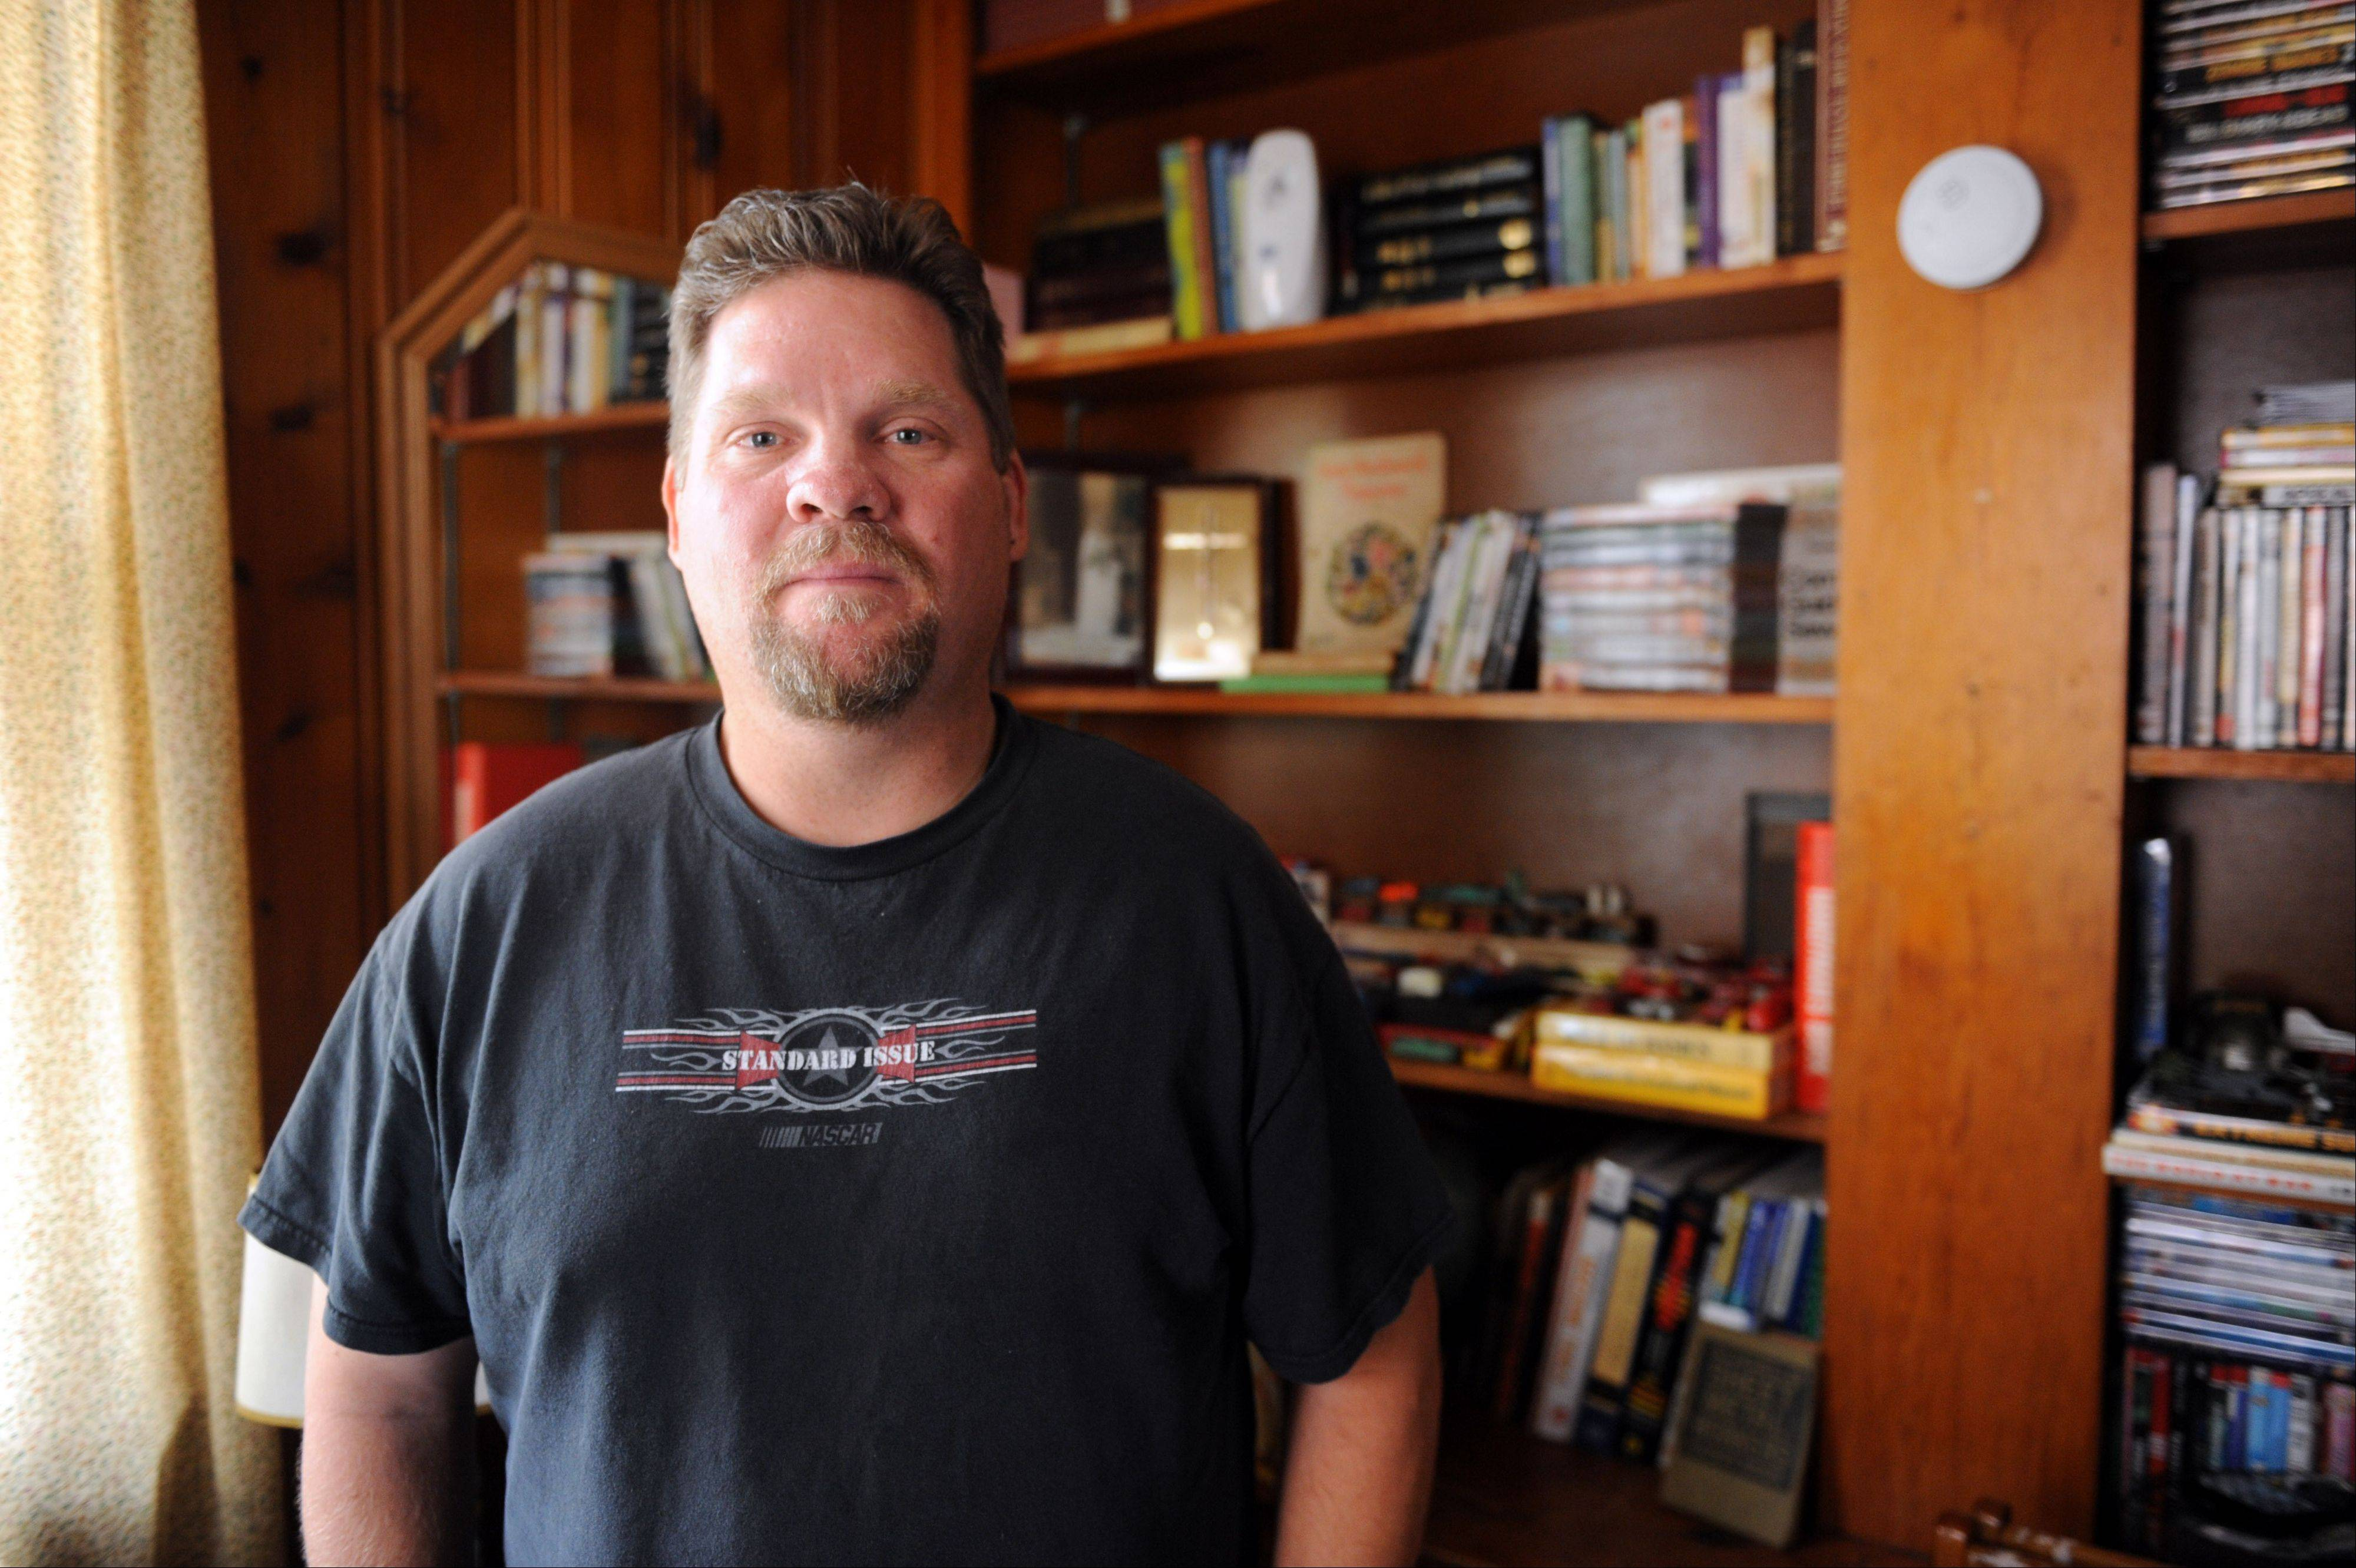 Jody Baugh lost his welding job in fall 2008 when his recreational vehicle factory in Wakarusa, Ind., closed, a casualty of the recession. He now makes modular homes and likes his job and company, but worries about gas prices, health care costs and more generally, the future.